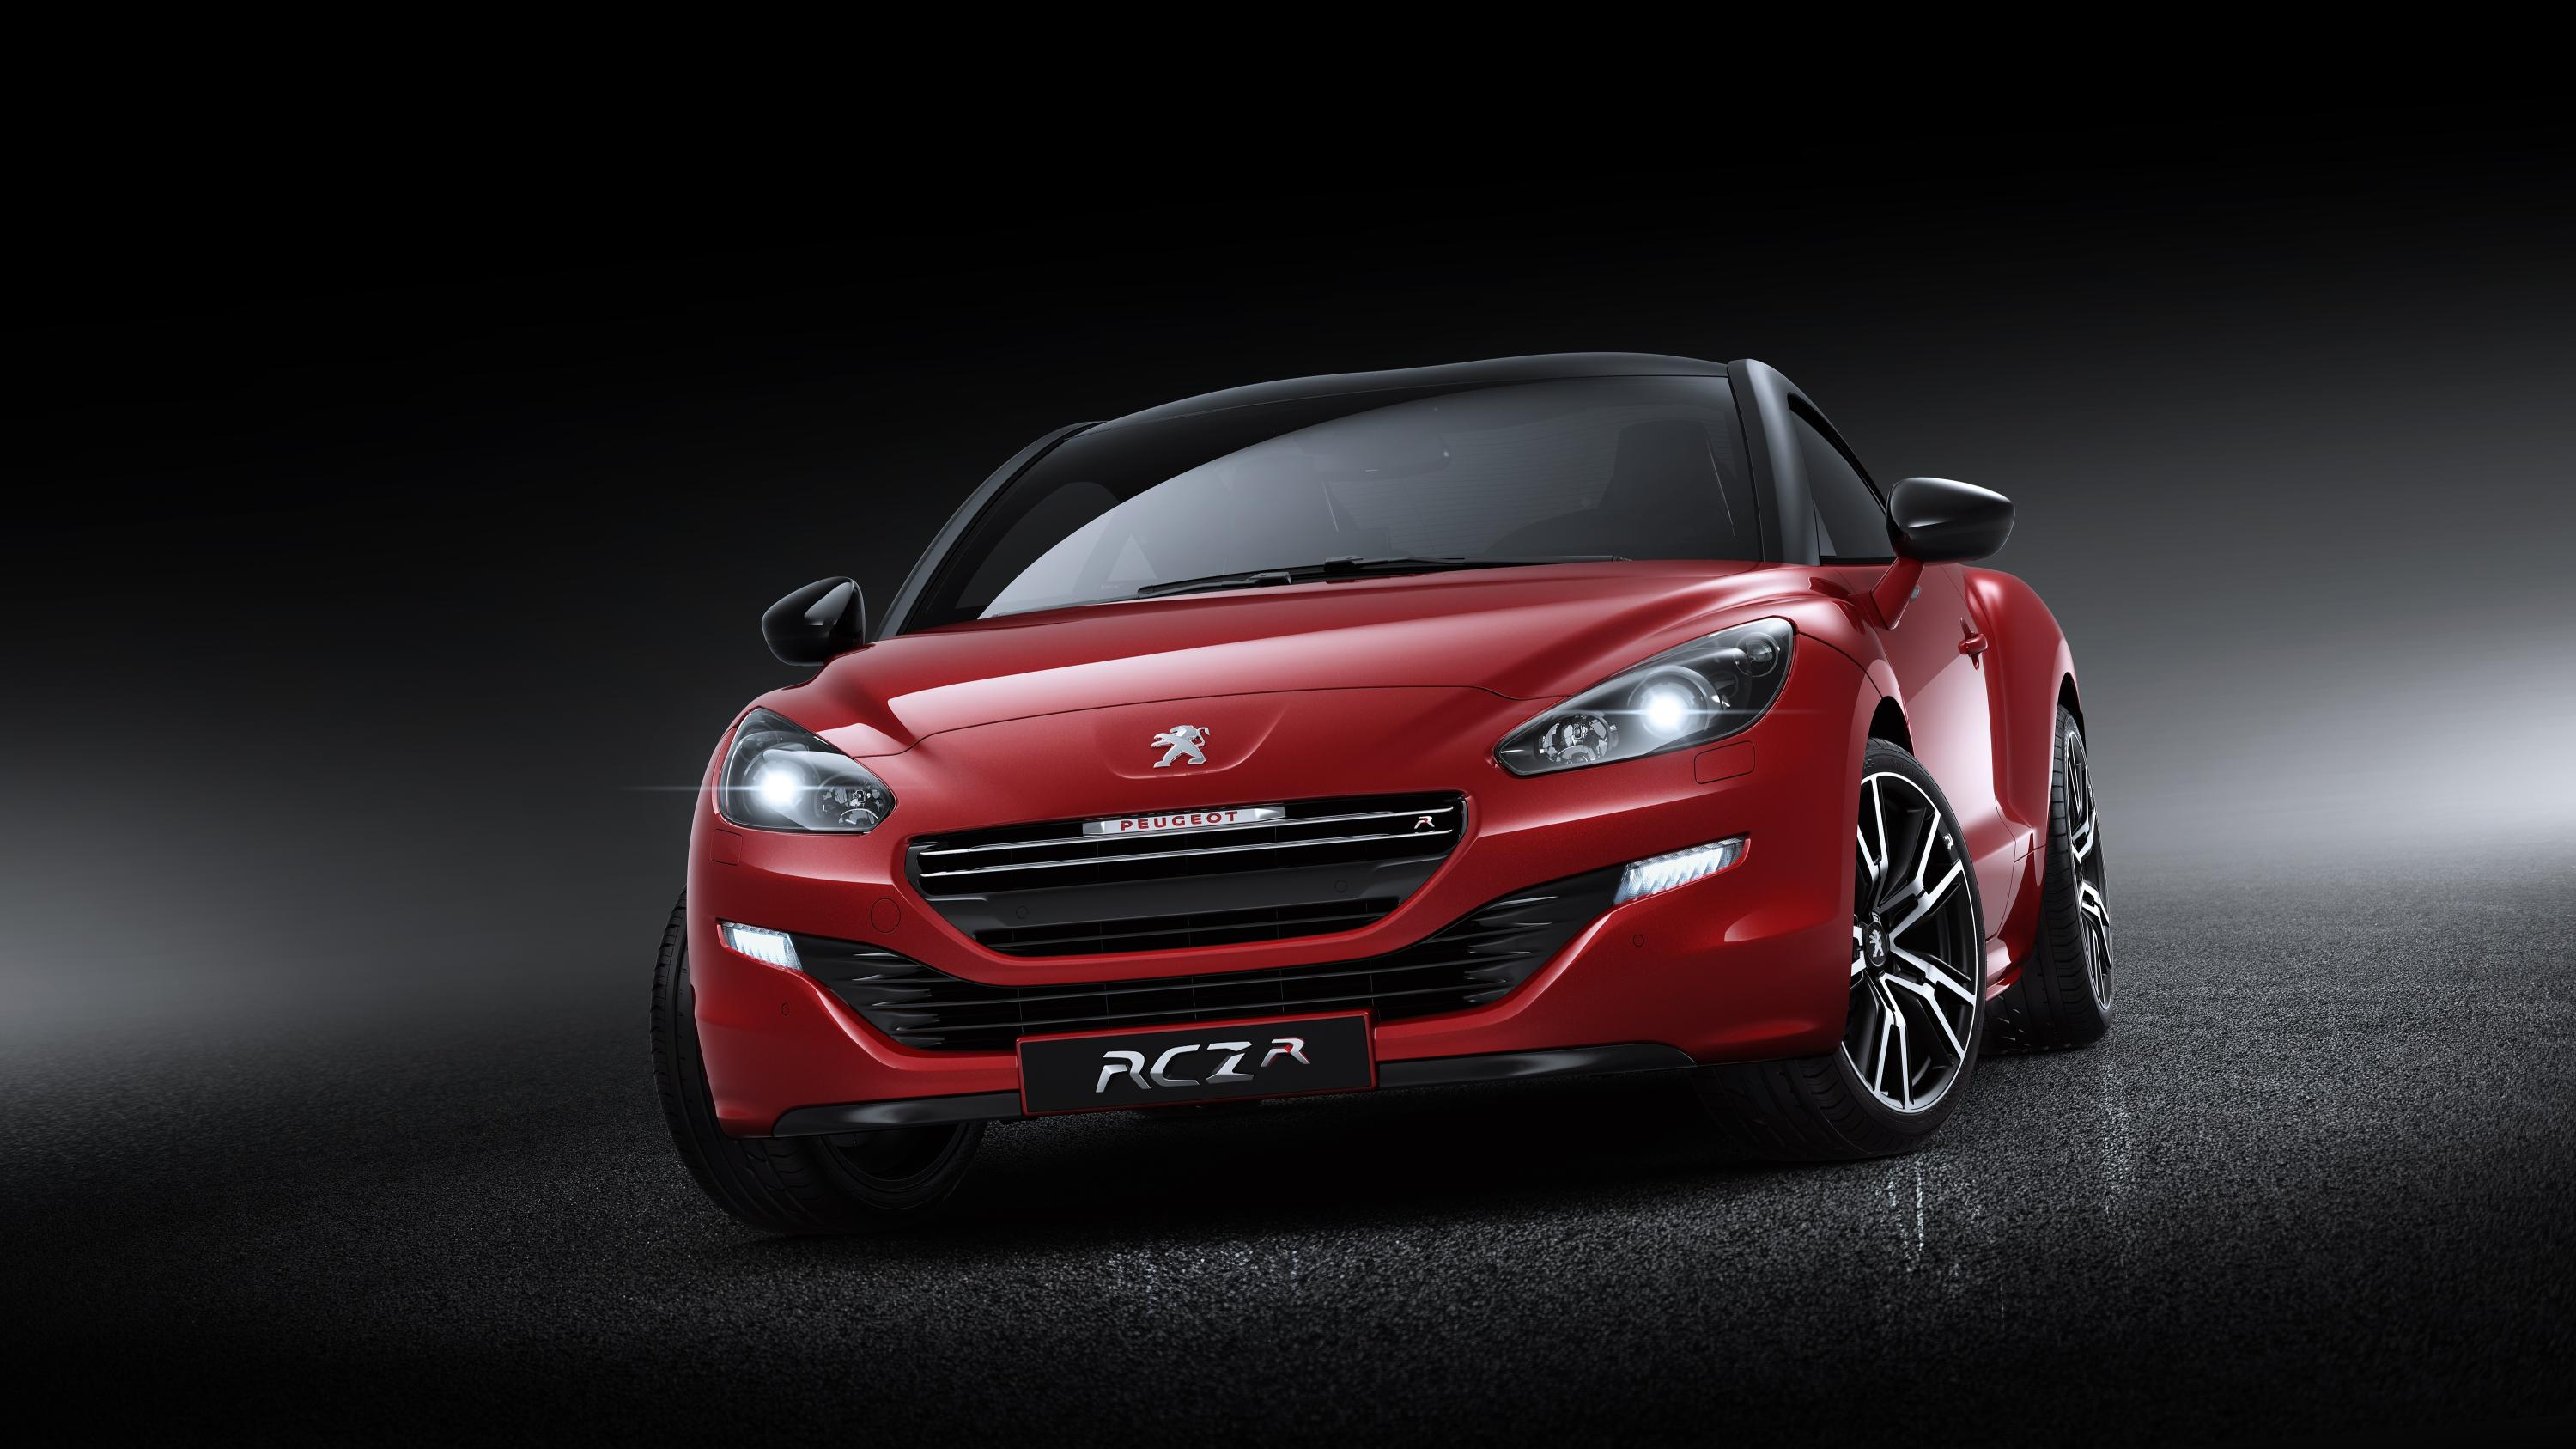 first images and specification details of peugeot rcz r revealed. Black Bedroom Furniture Sets. Home Design Ideas